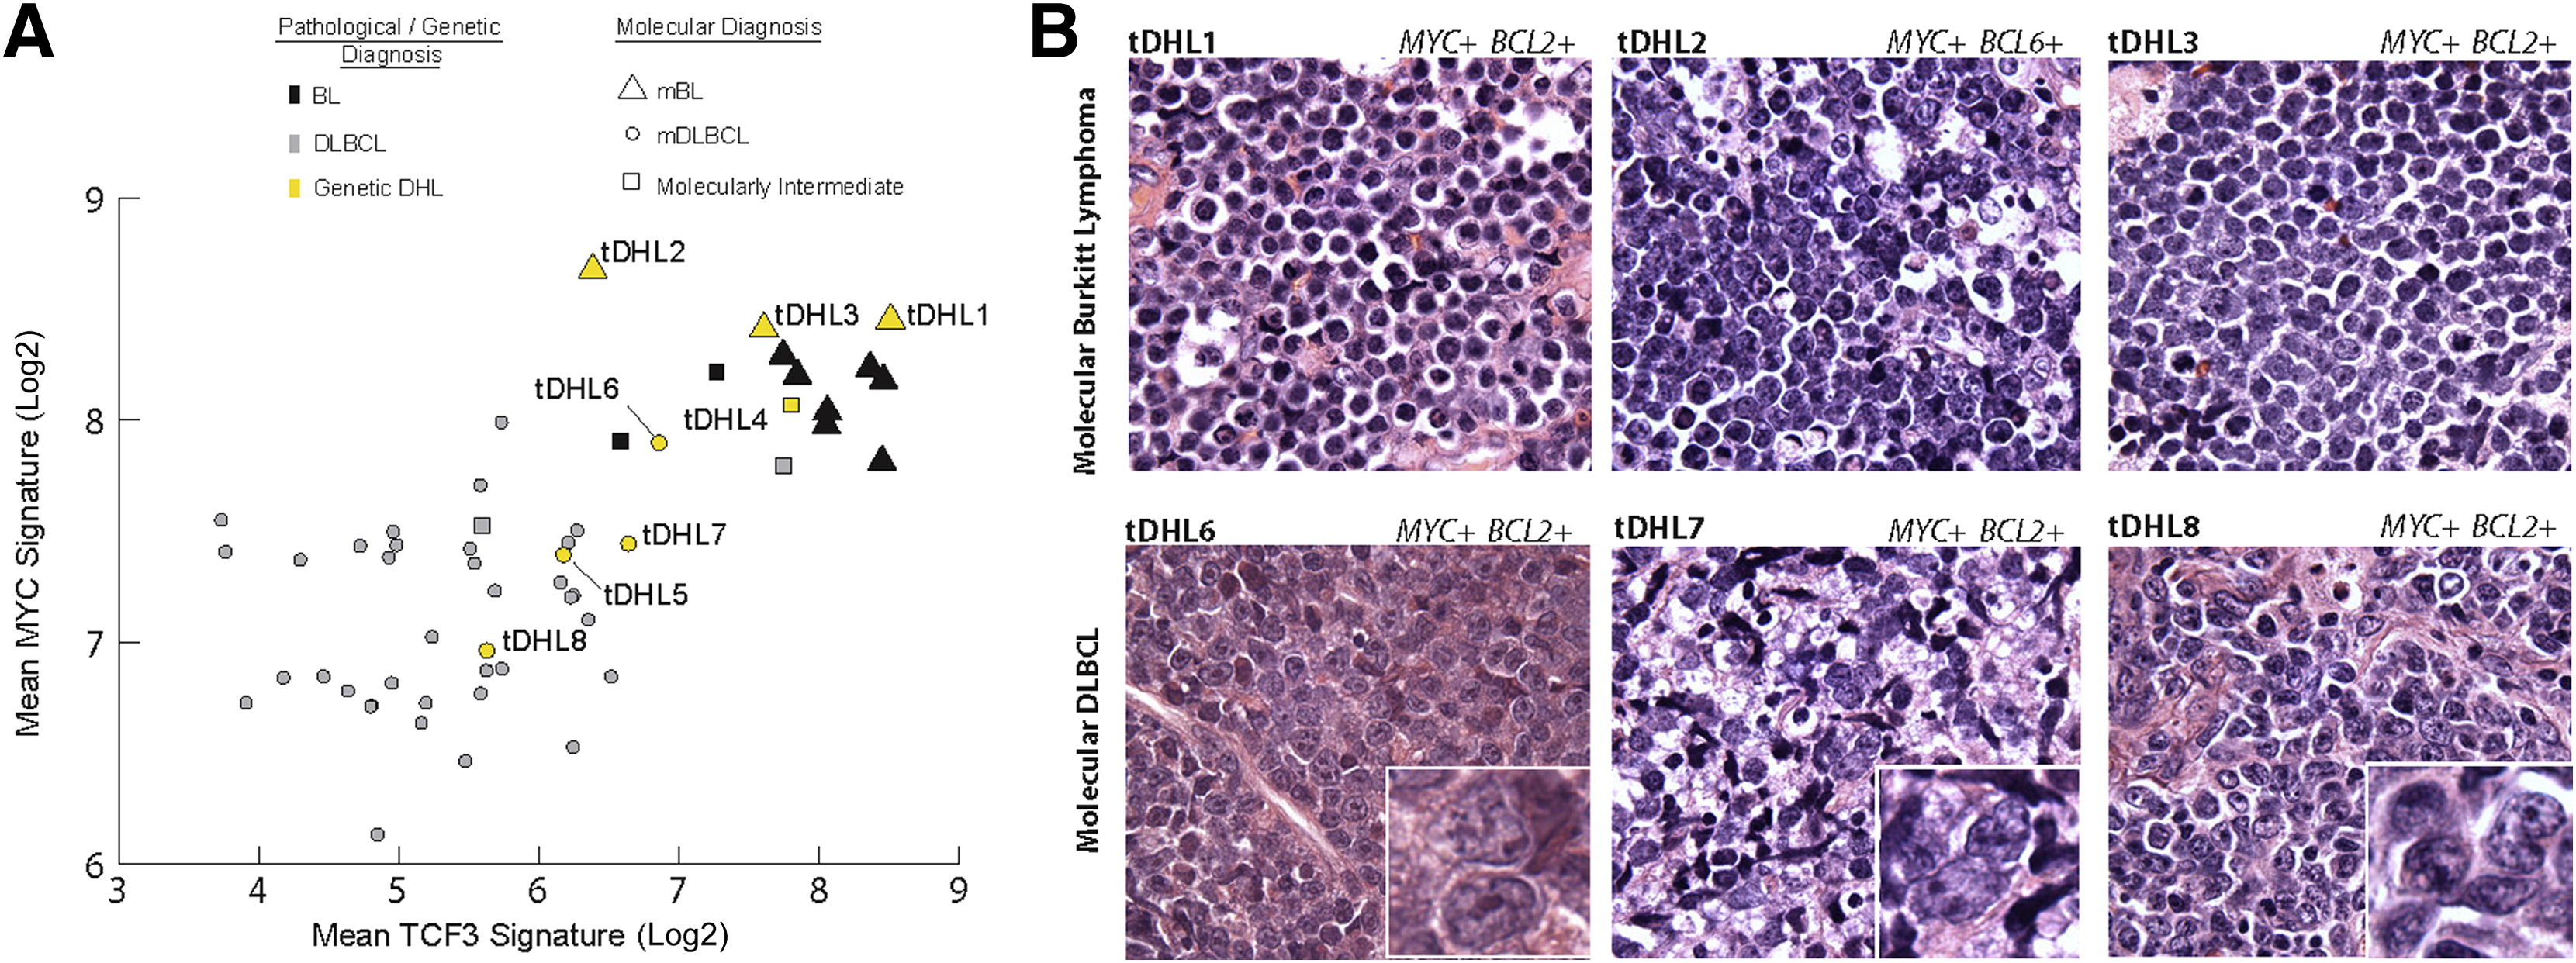 Molecular Classification Of Myc Driven B Cell Lymphomas By Targeted Gene Expression Profiling Of